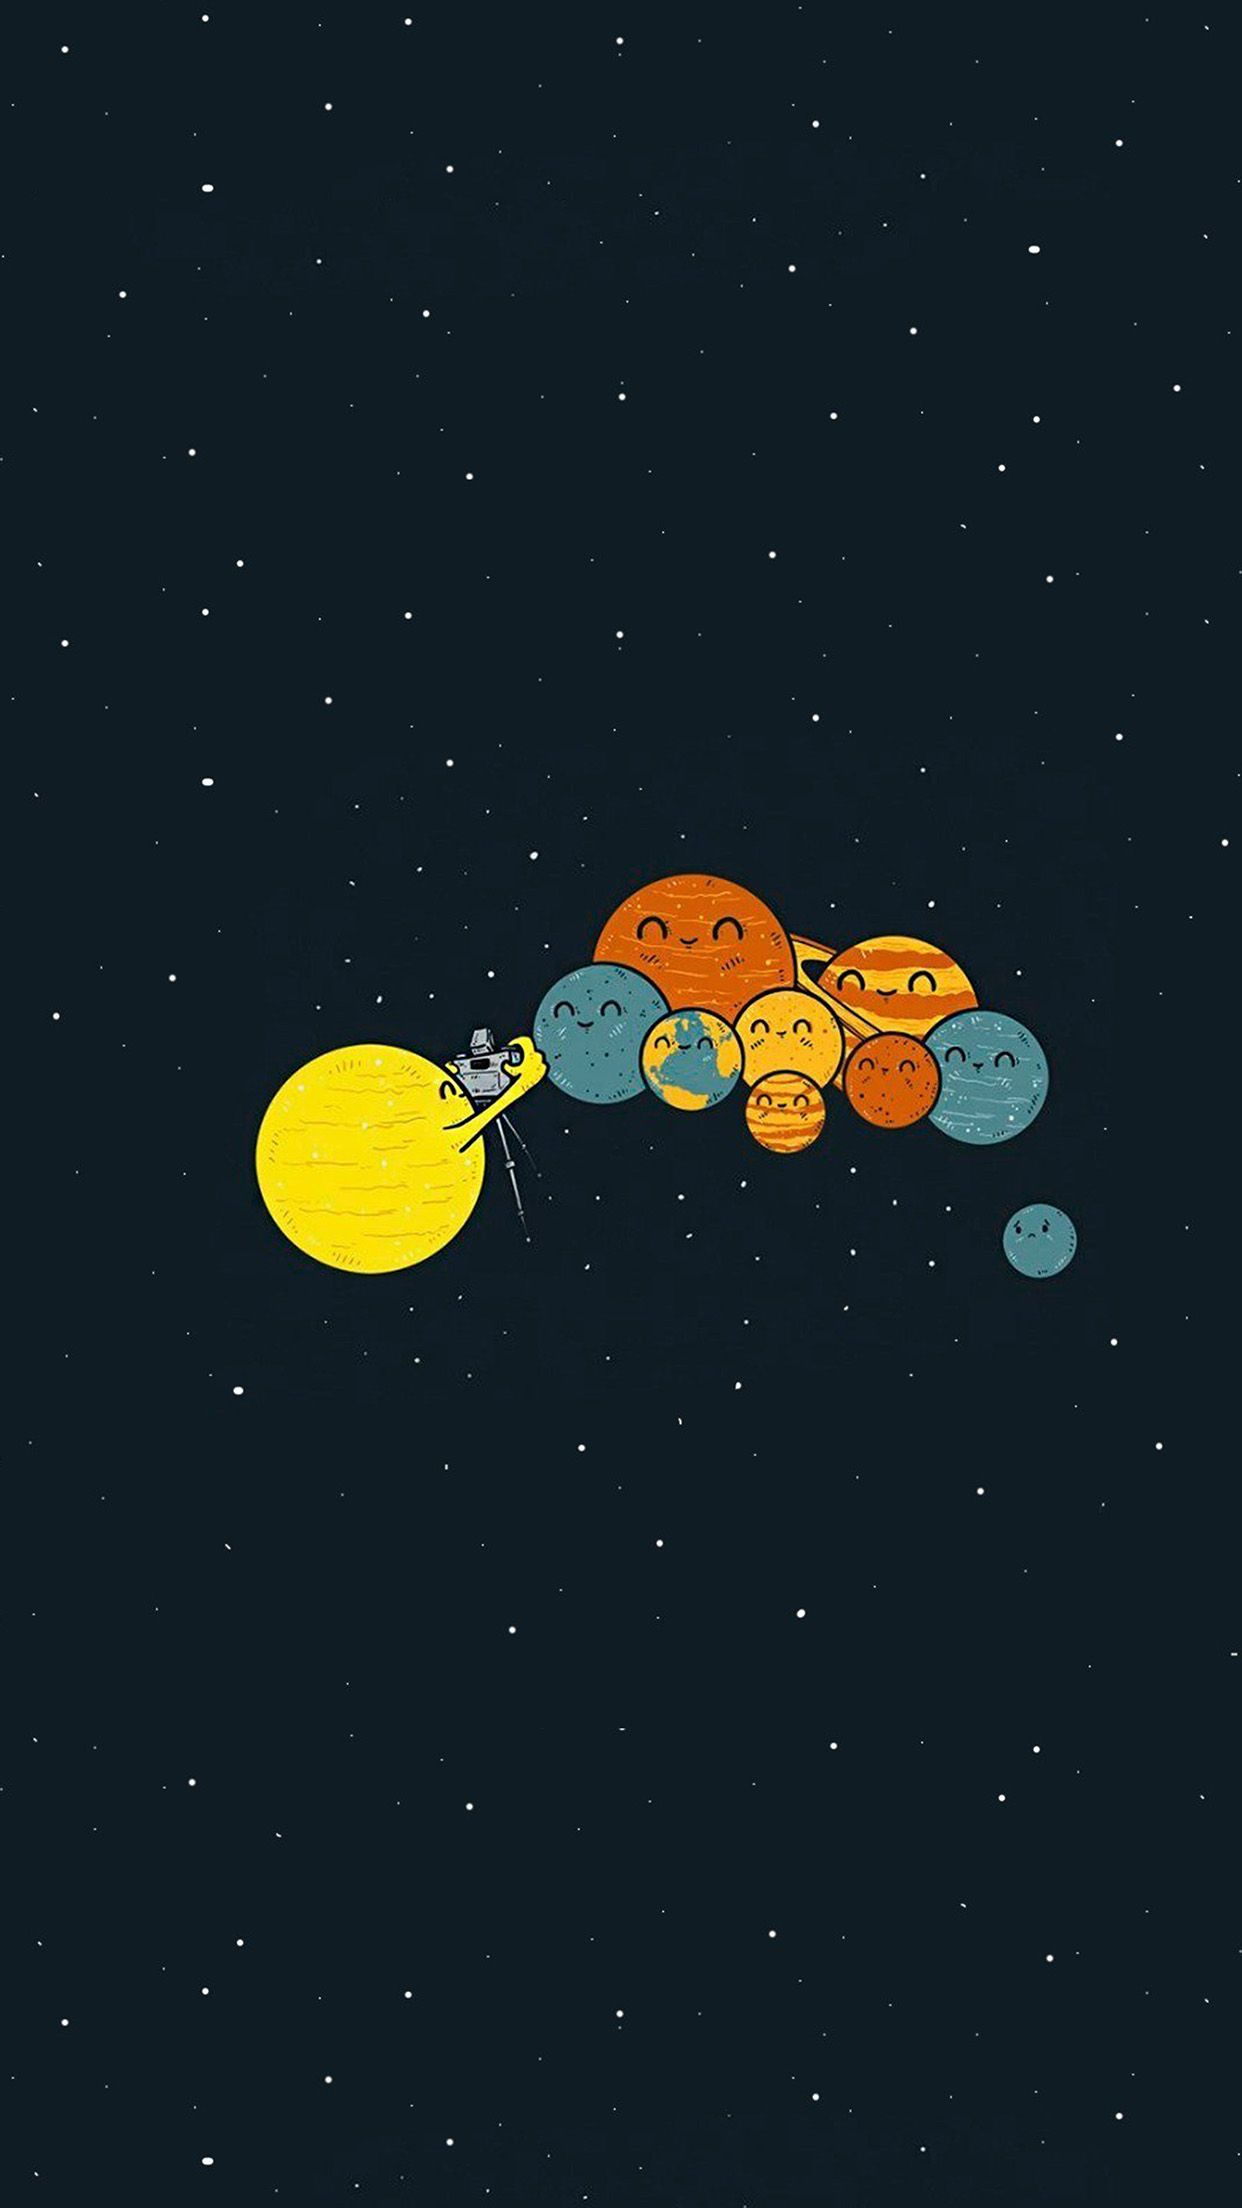 Nice Love Wallpapers For Iphone : nice planets-cute-illustration-space-art-iphone6-plus-wallpaper Mobile Wallpaper Pinterest ...